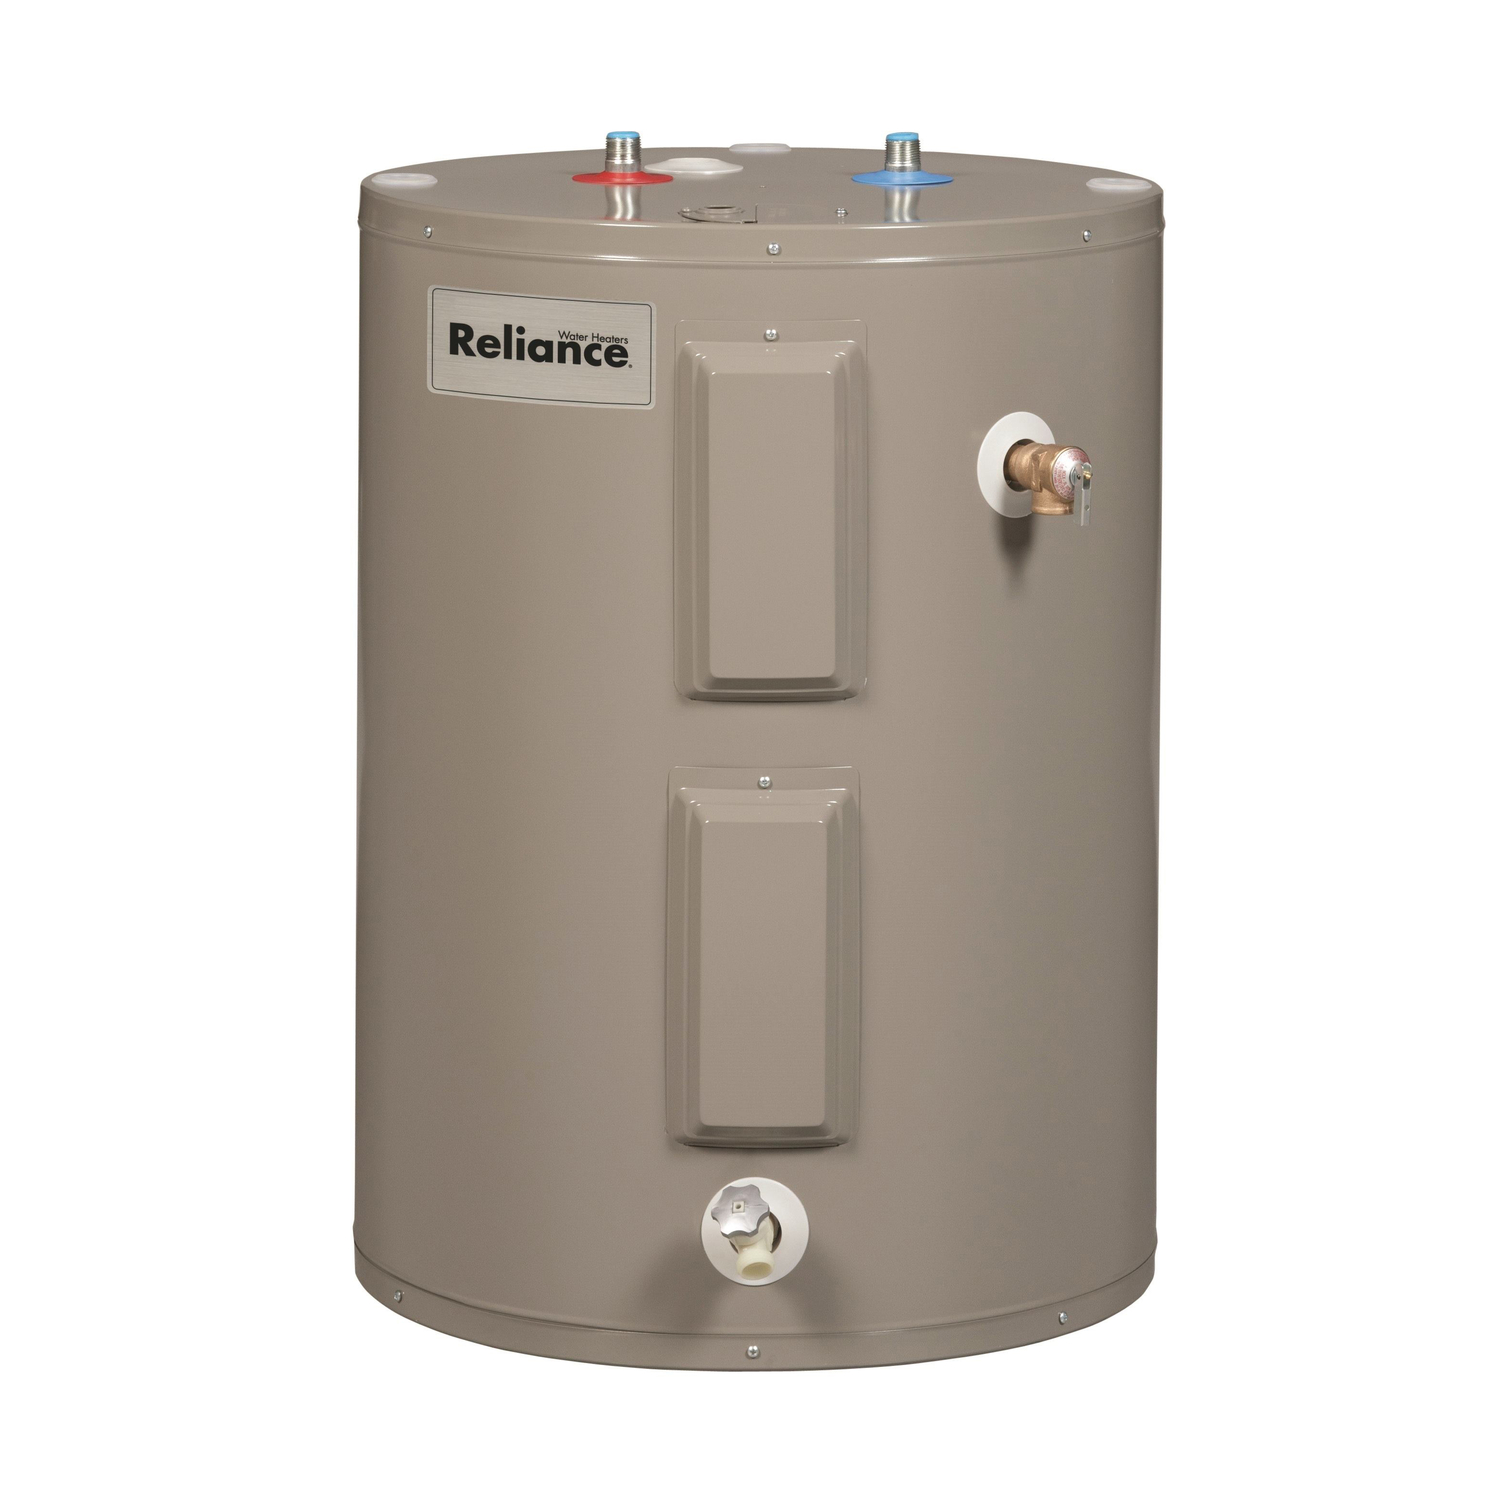 Reliance  Lowboy Water Heater  Electric  48 gal. 34 in. H x 26-1/2 in. L x 26-1/2 in. W